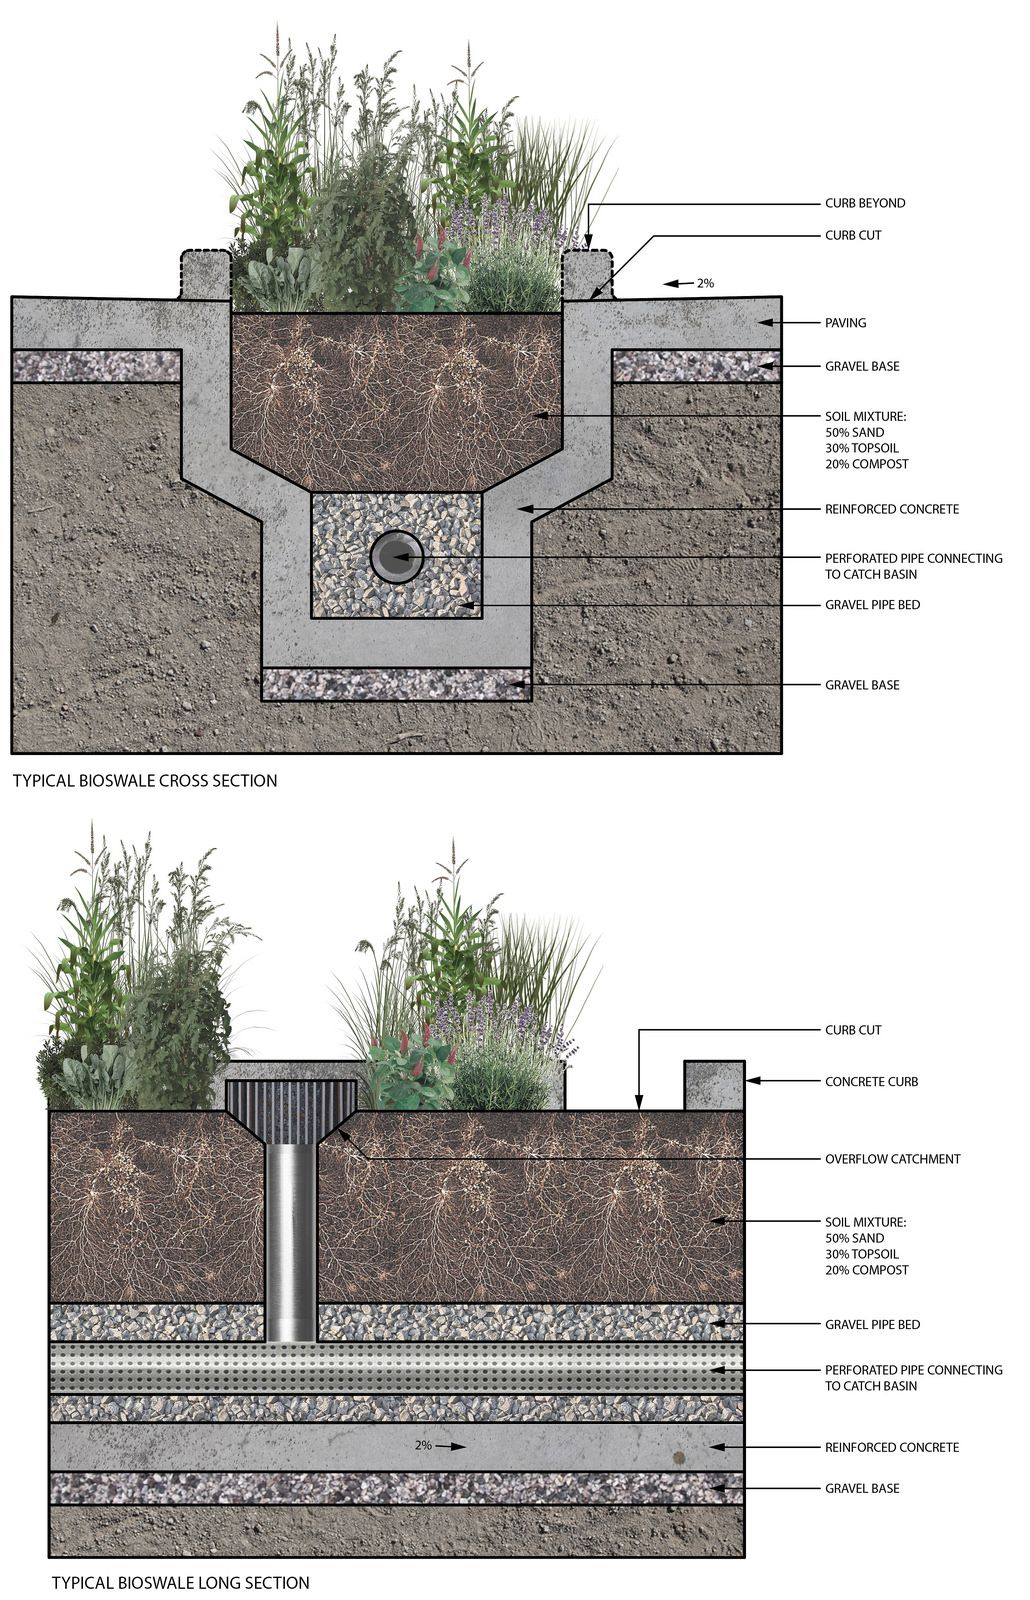 Integrated Urban Bioswale Components Economies Of Swale